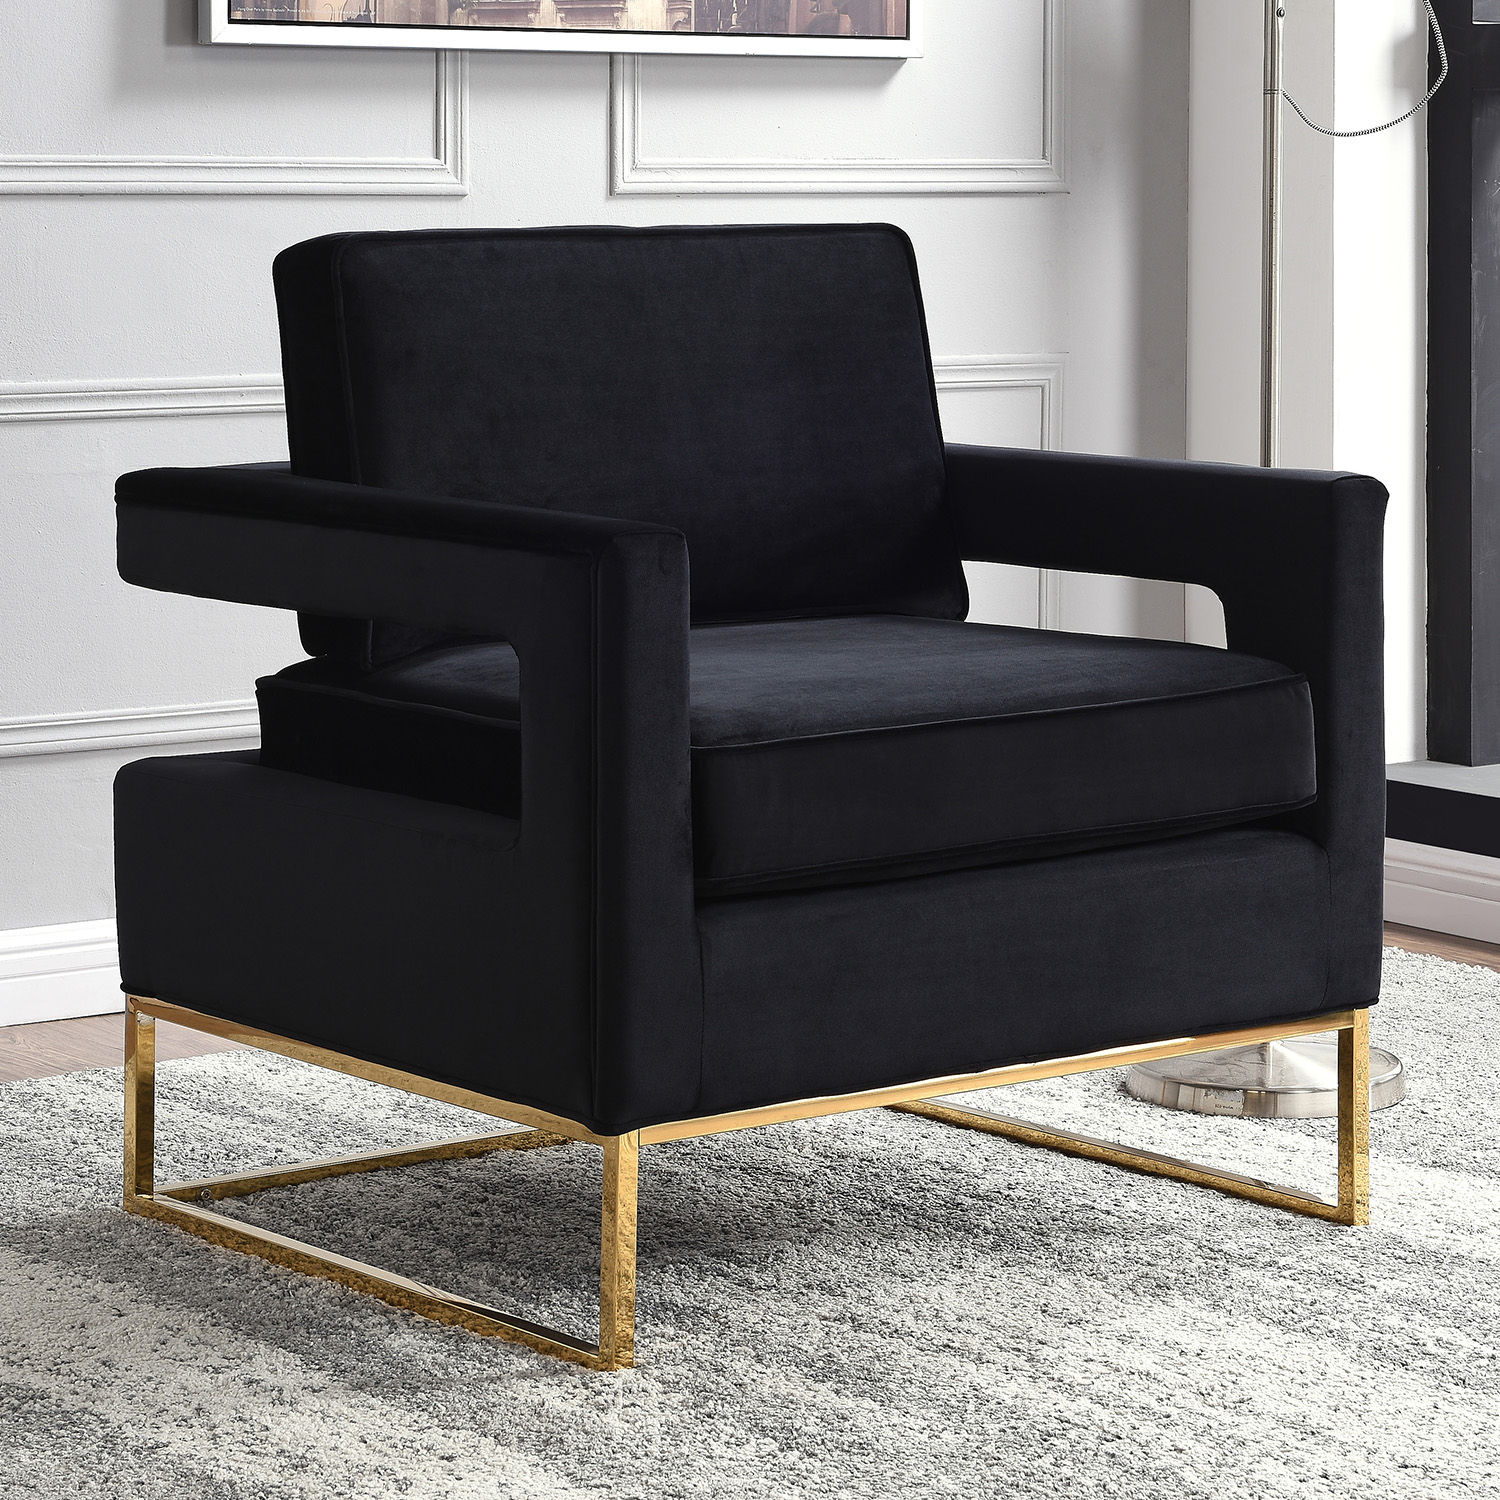 Delicieux Meridian Furniture Noah Accent Chair In Black Velvet On Gold Base. Hover To  Zoom